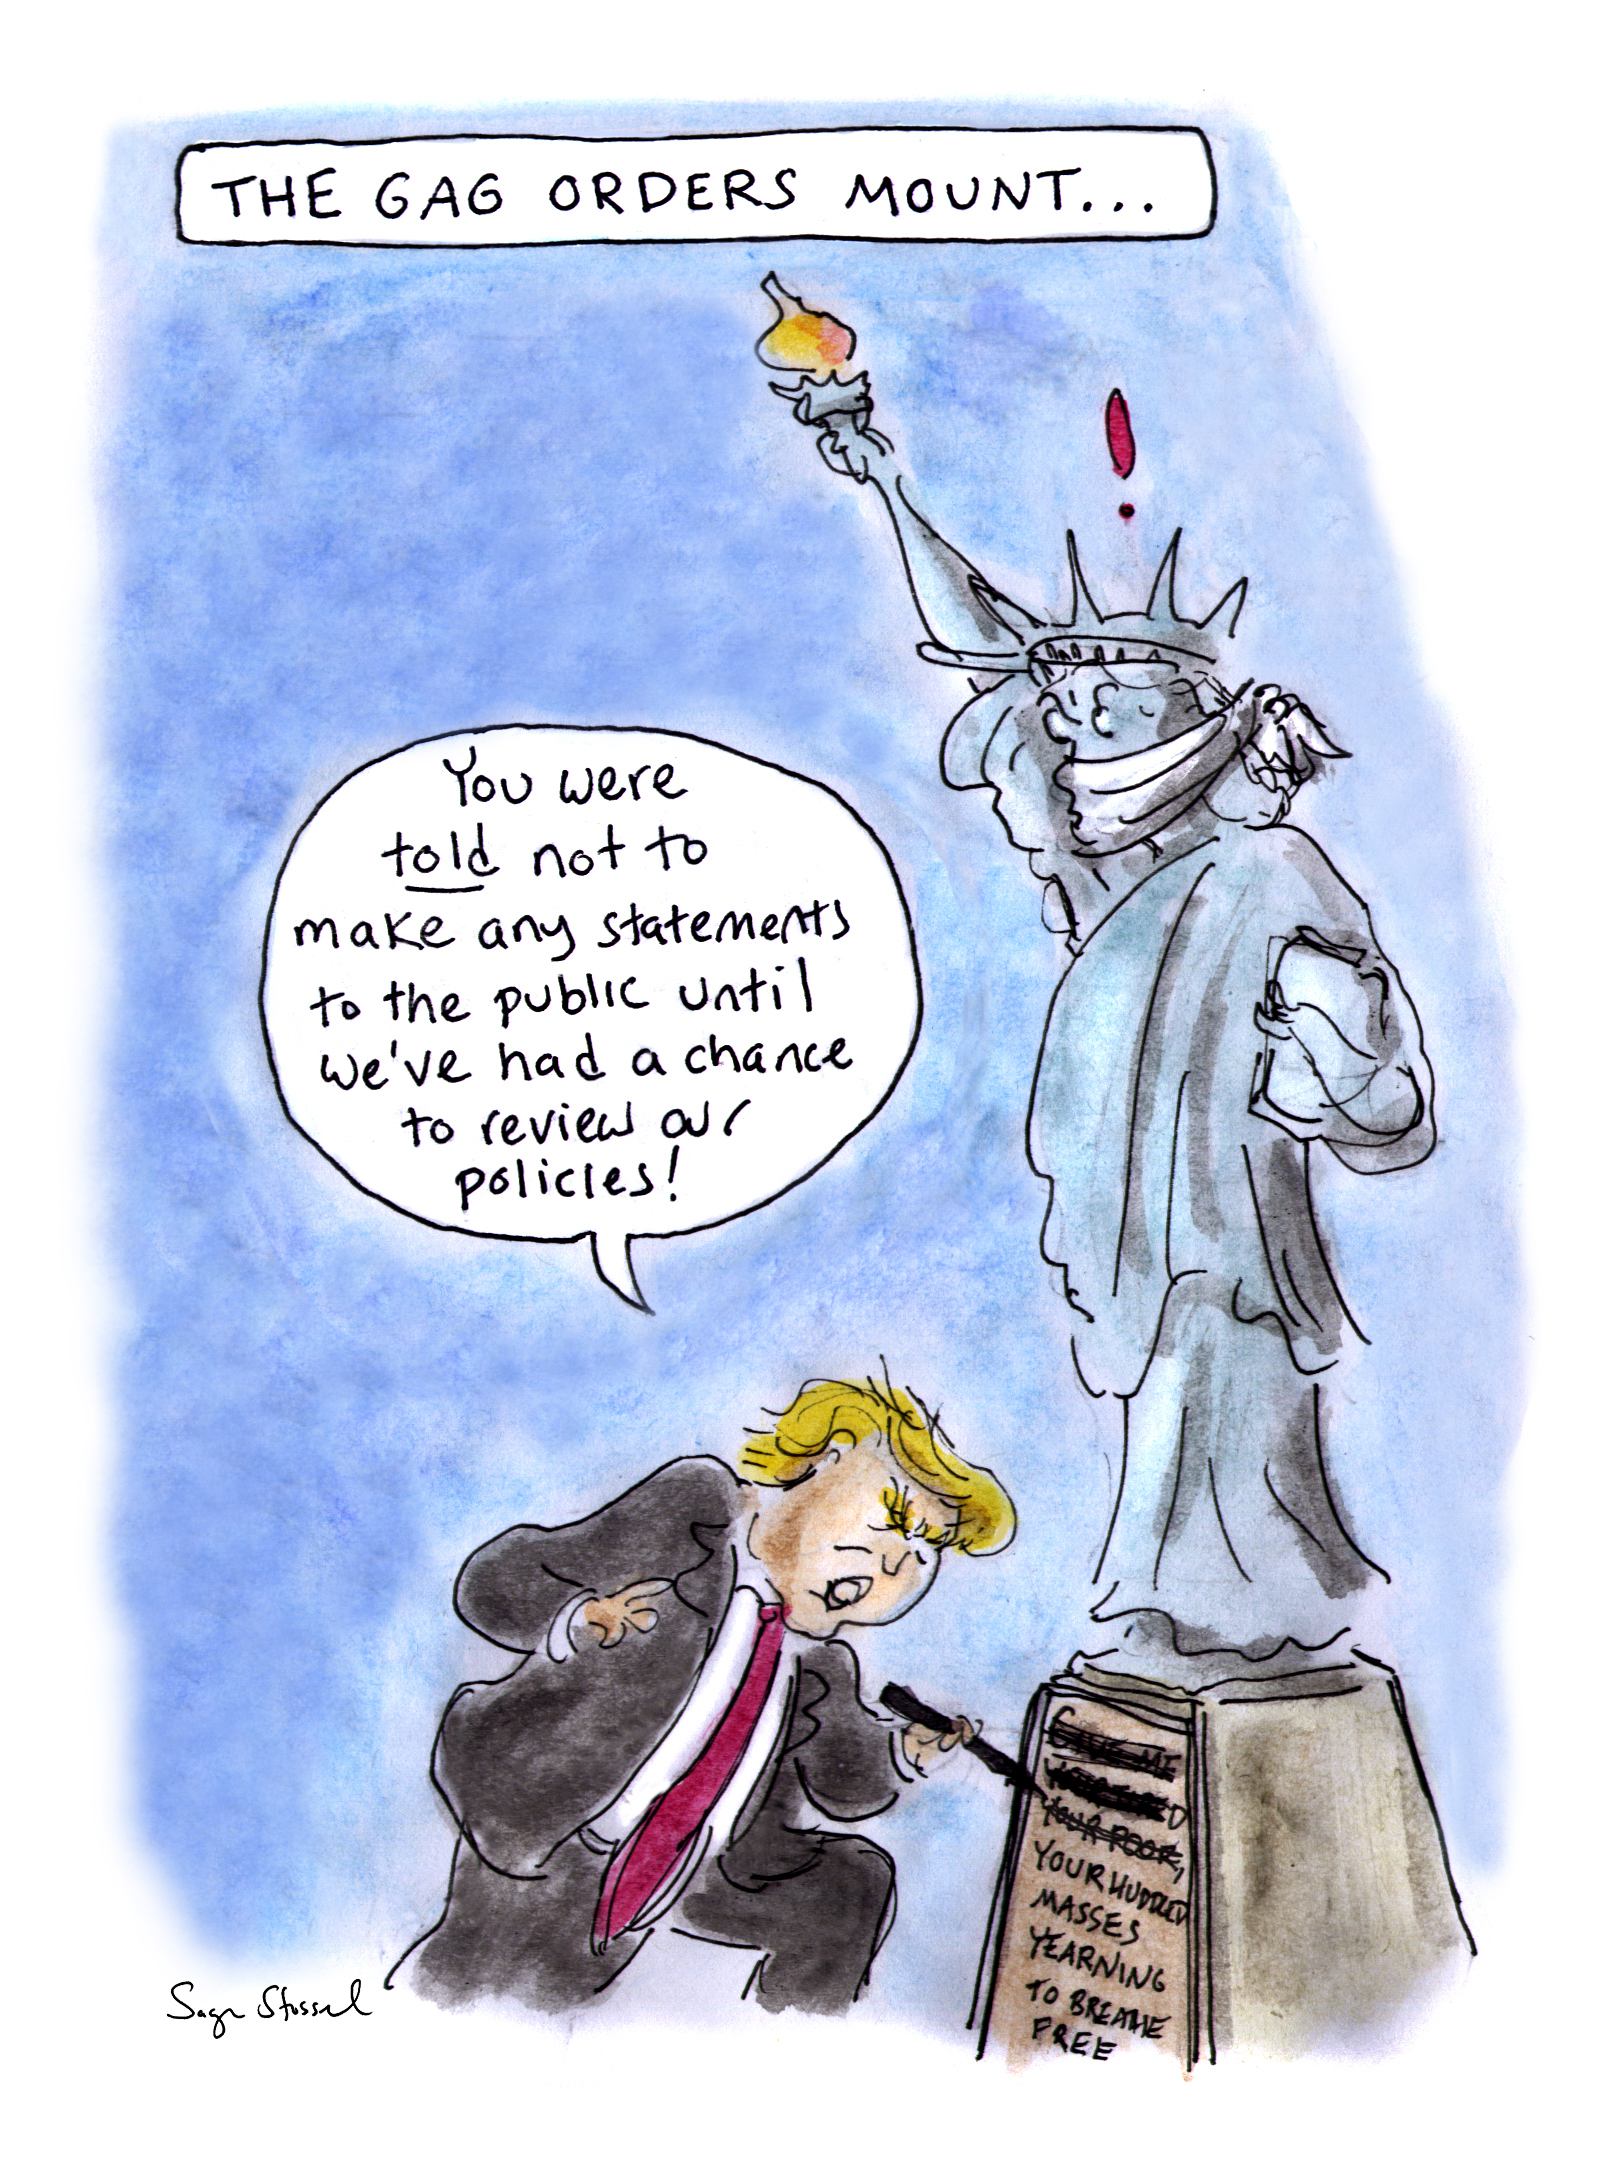 trump, gag orders, restrictions, communications, press, congress, epa, park service, statue of liberty, immigration, transition, gag orders, sage stossel, cartoon